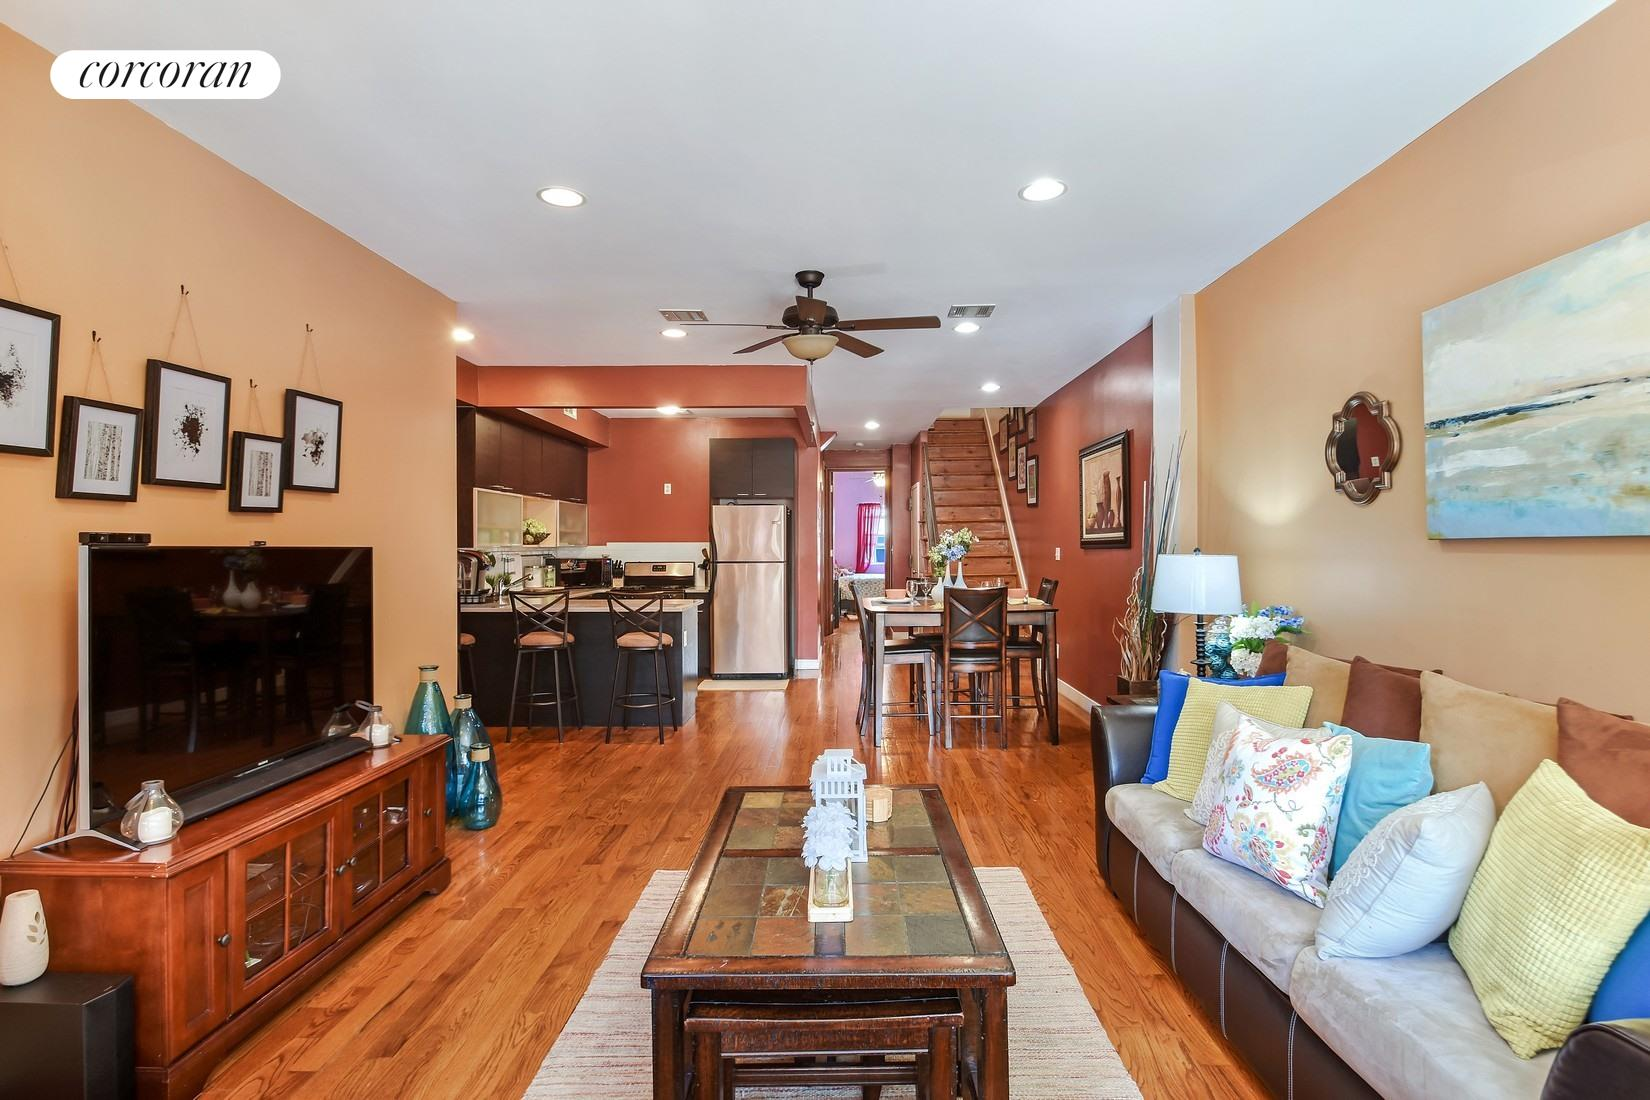 1613 Bergen Street, 2, Bright Southern Exposure and High Ceilings